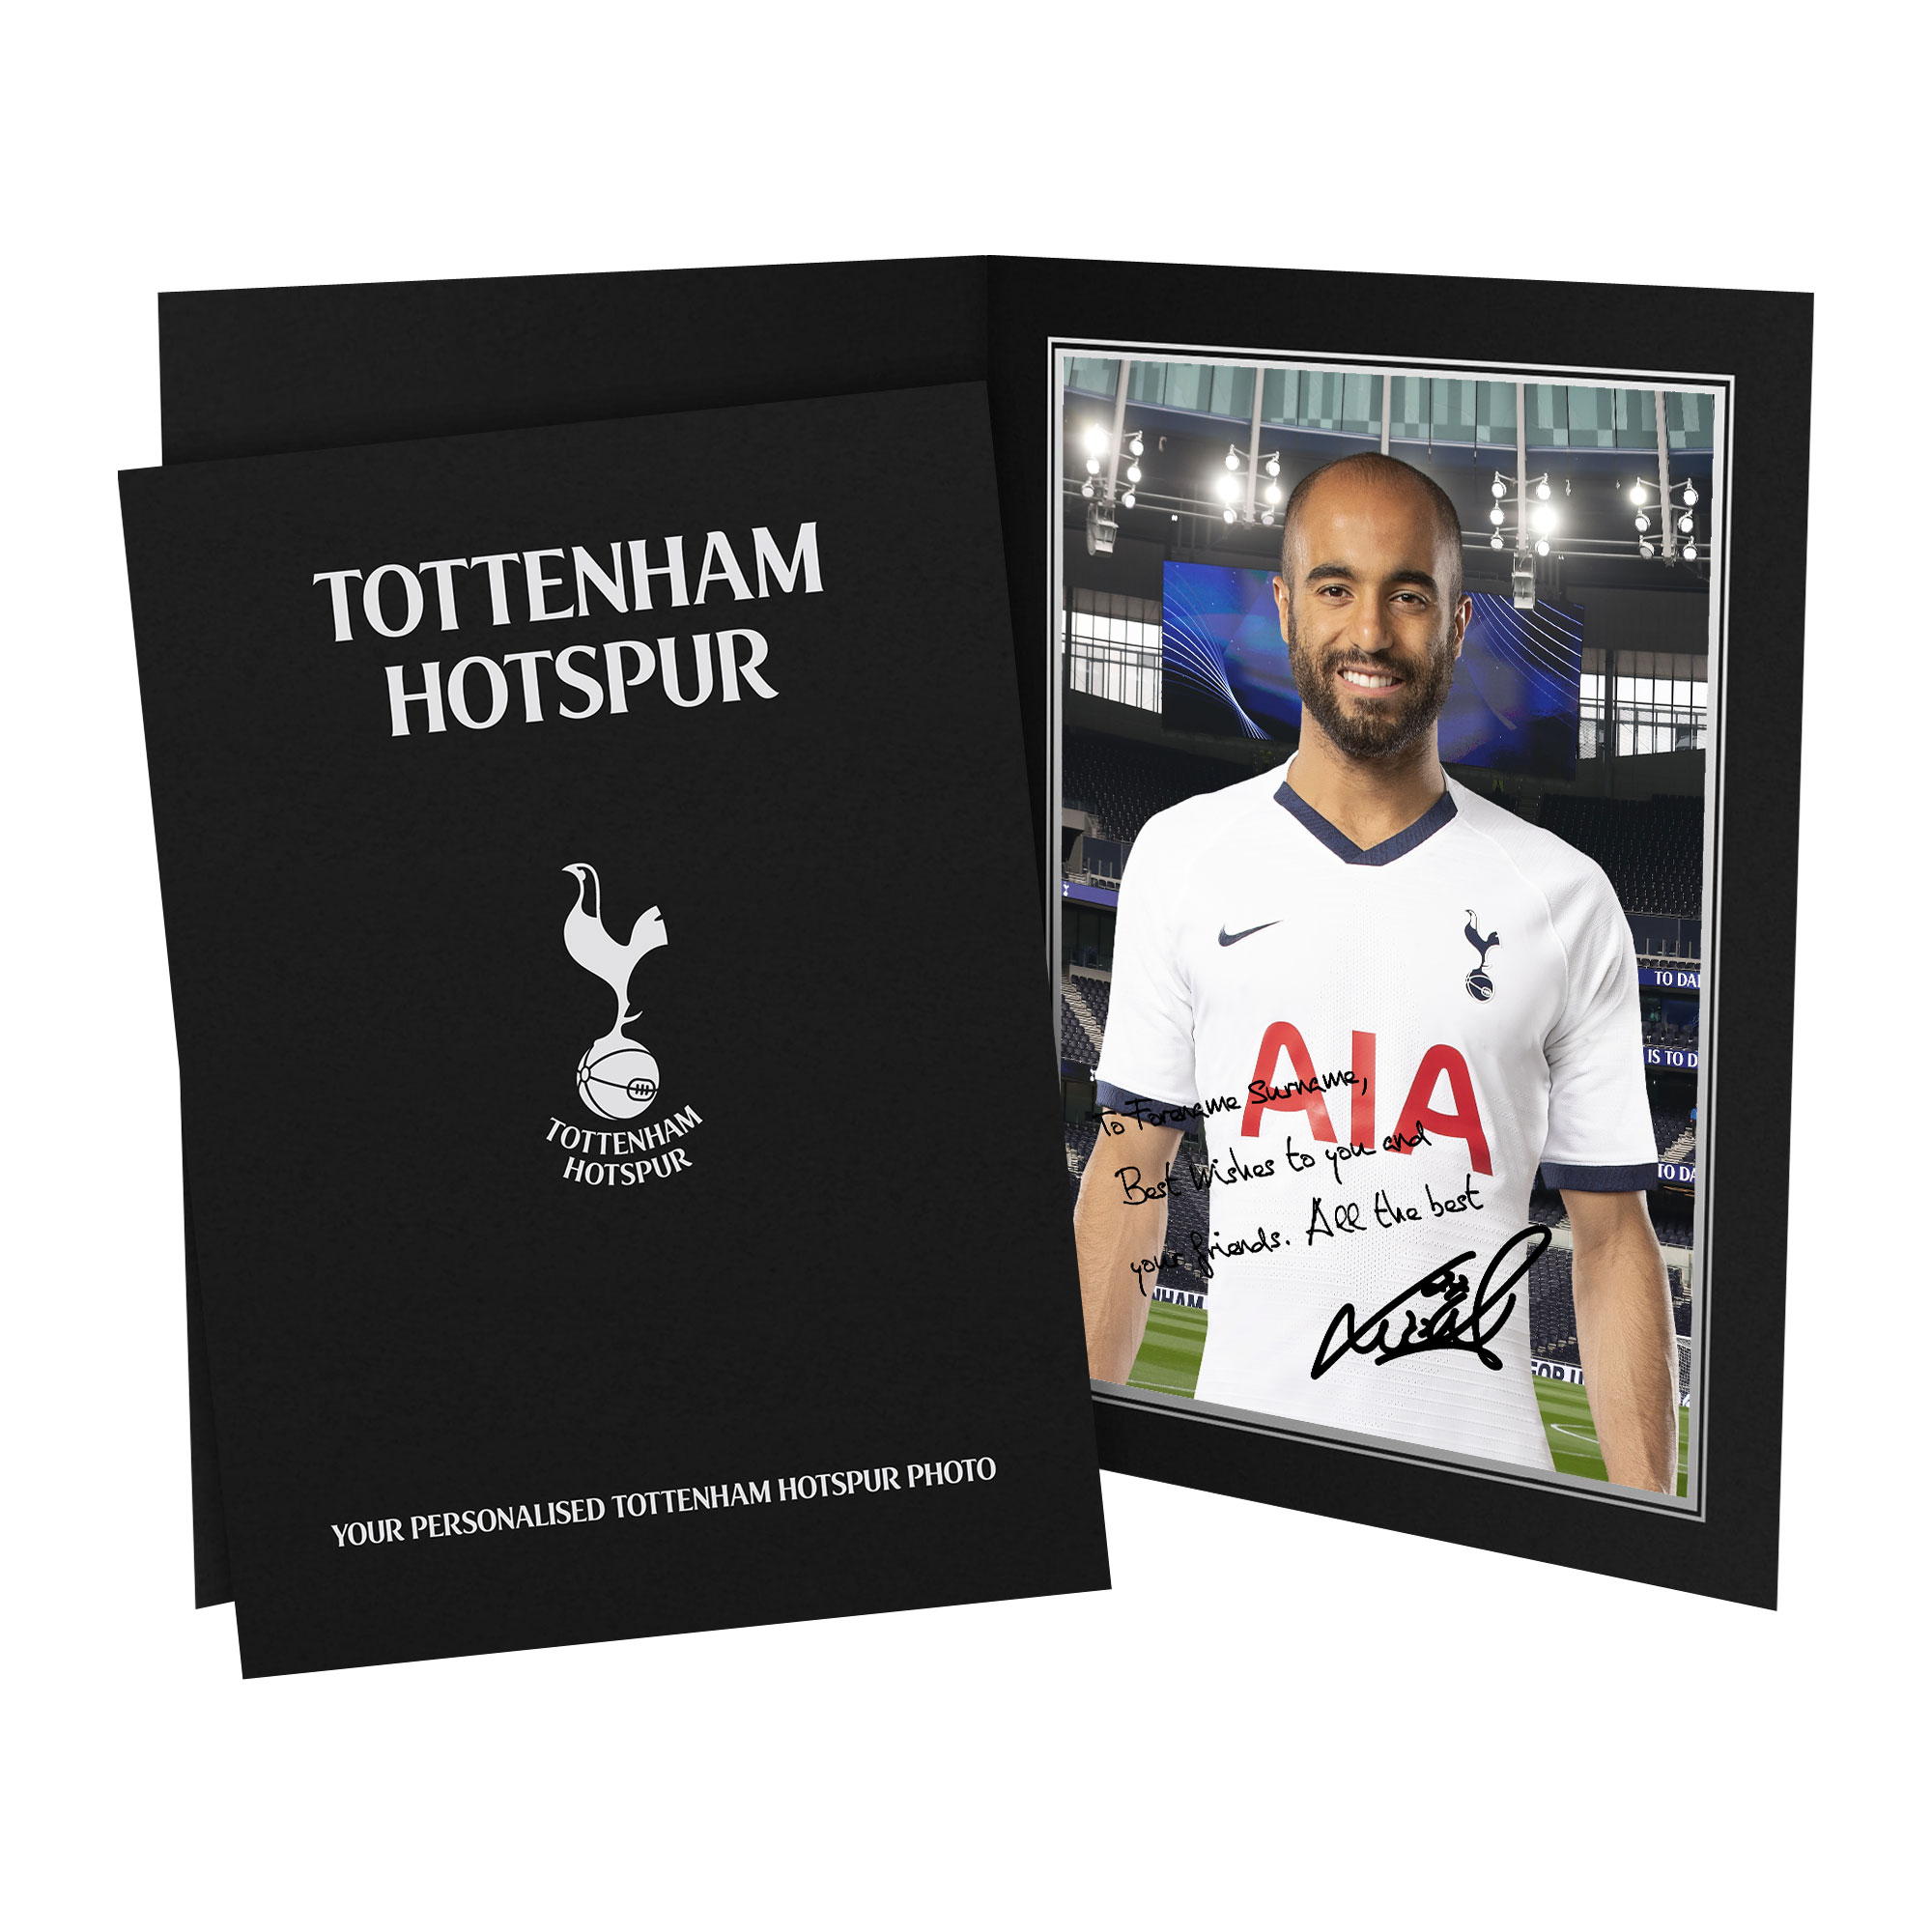 Tottenham Hotspur Moura Autograph Photo Folder